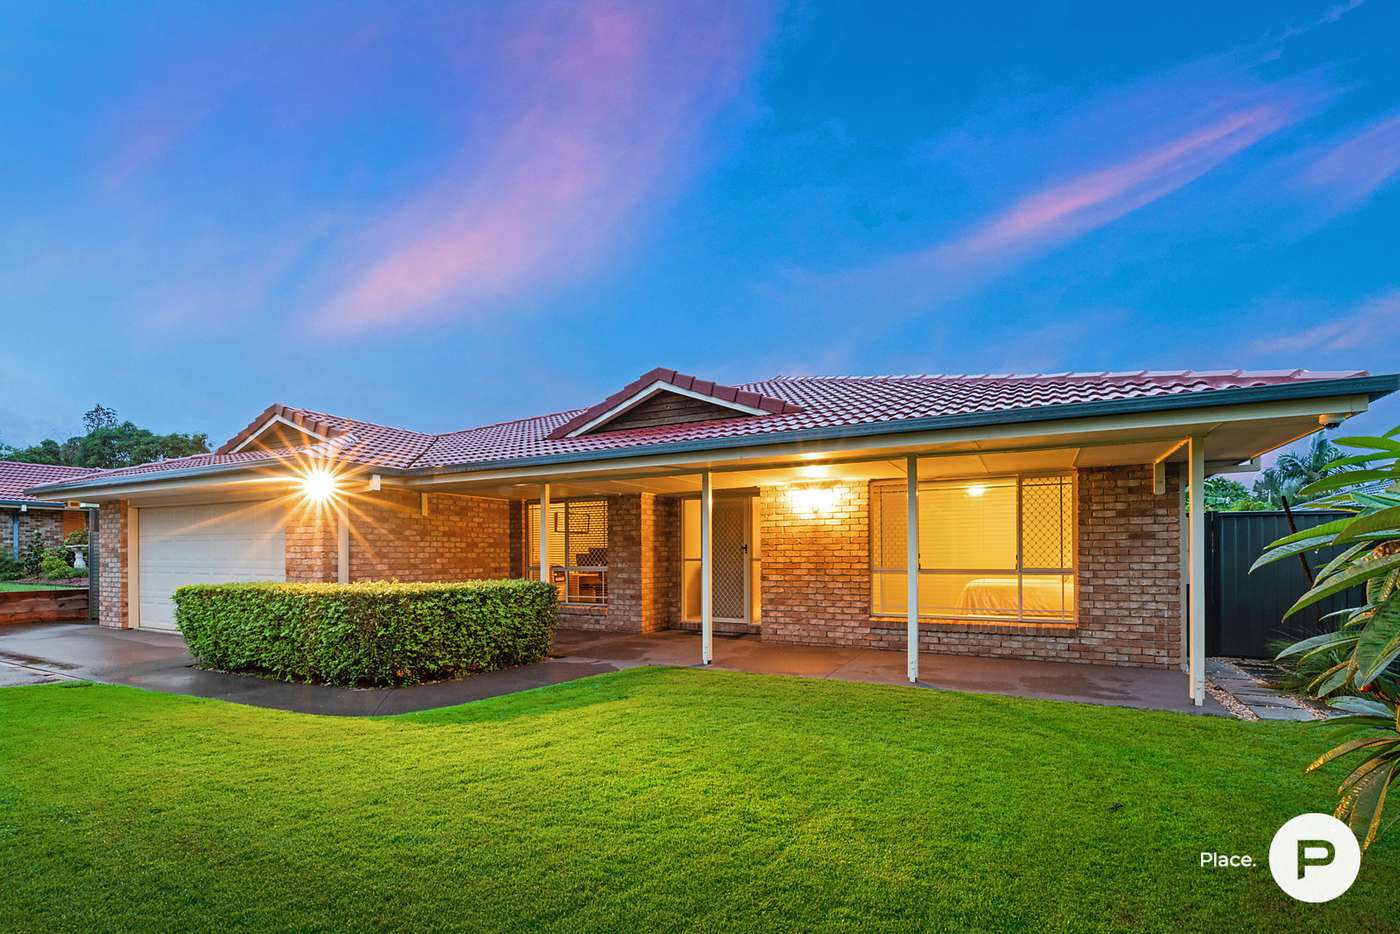 Main view of Homely house listing, 15 Bellfield Crescent, Parkinson QLD 4115